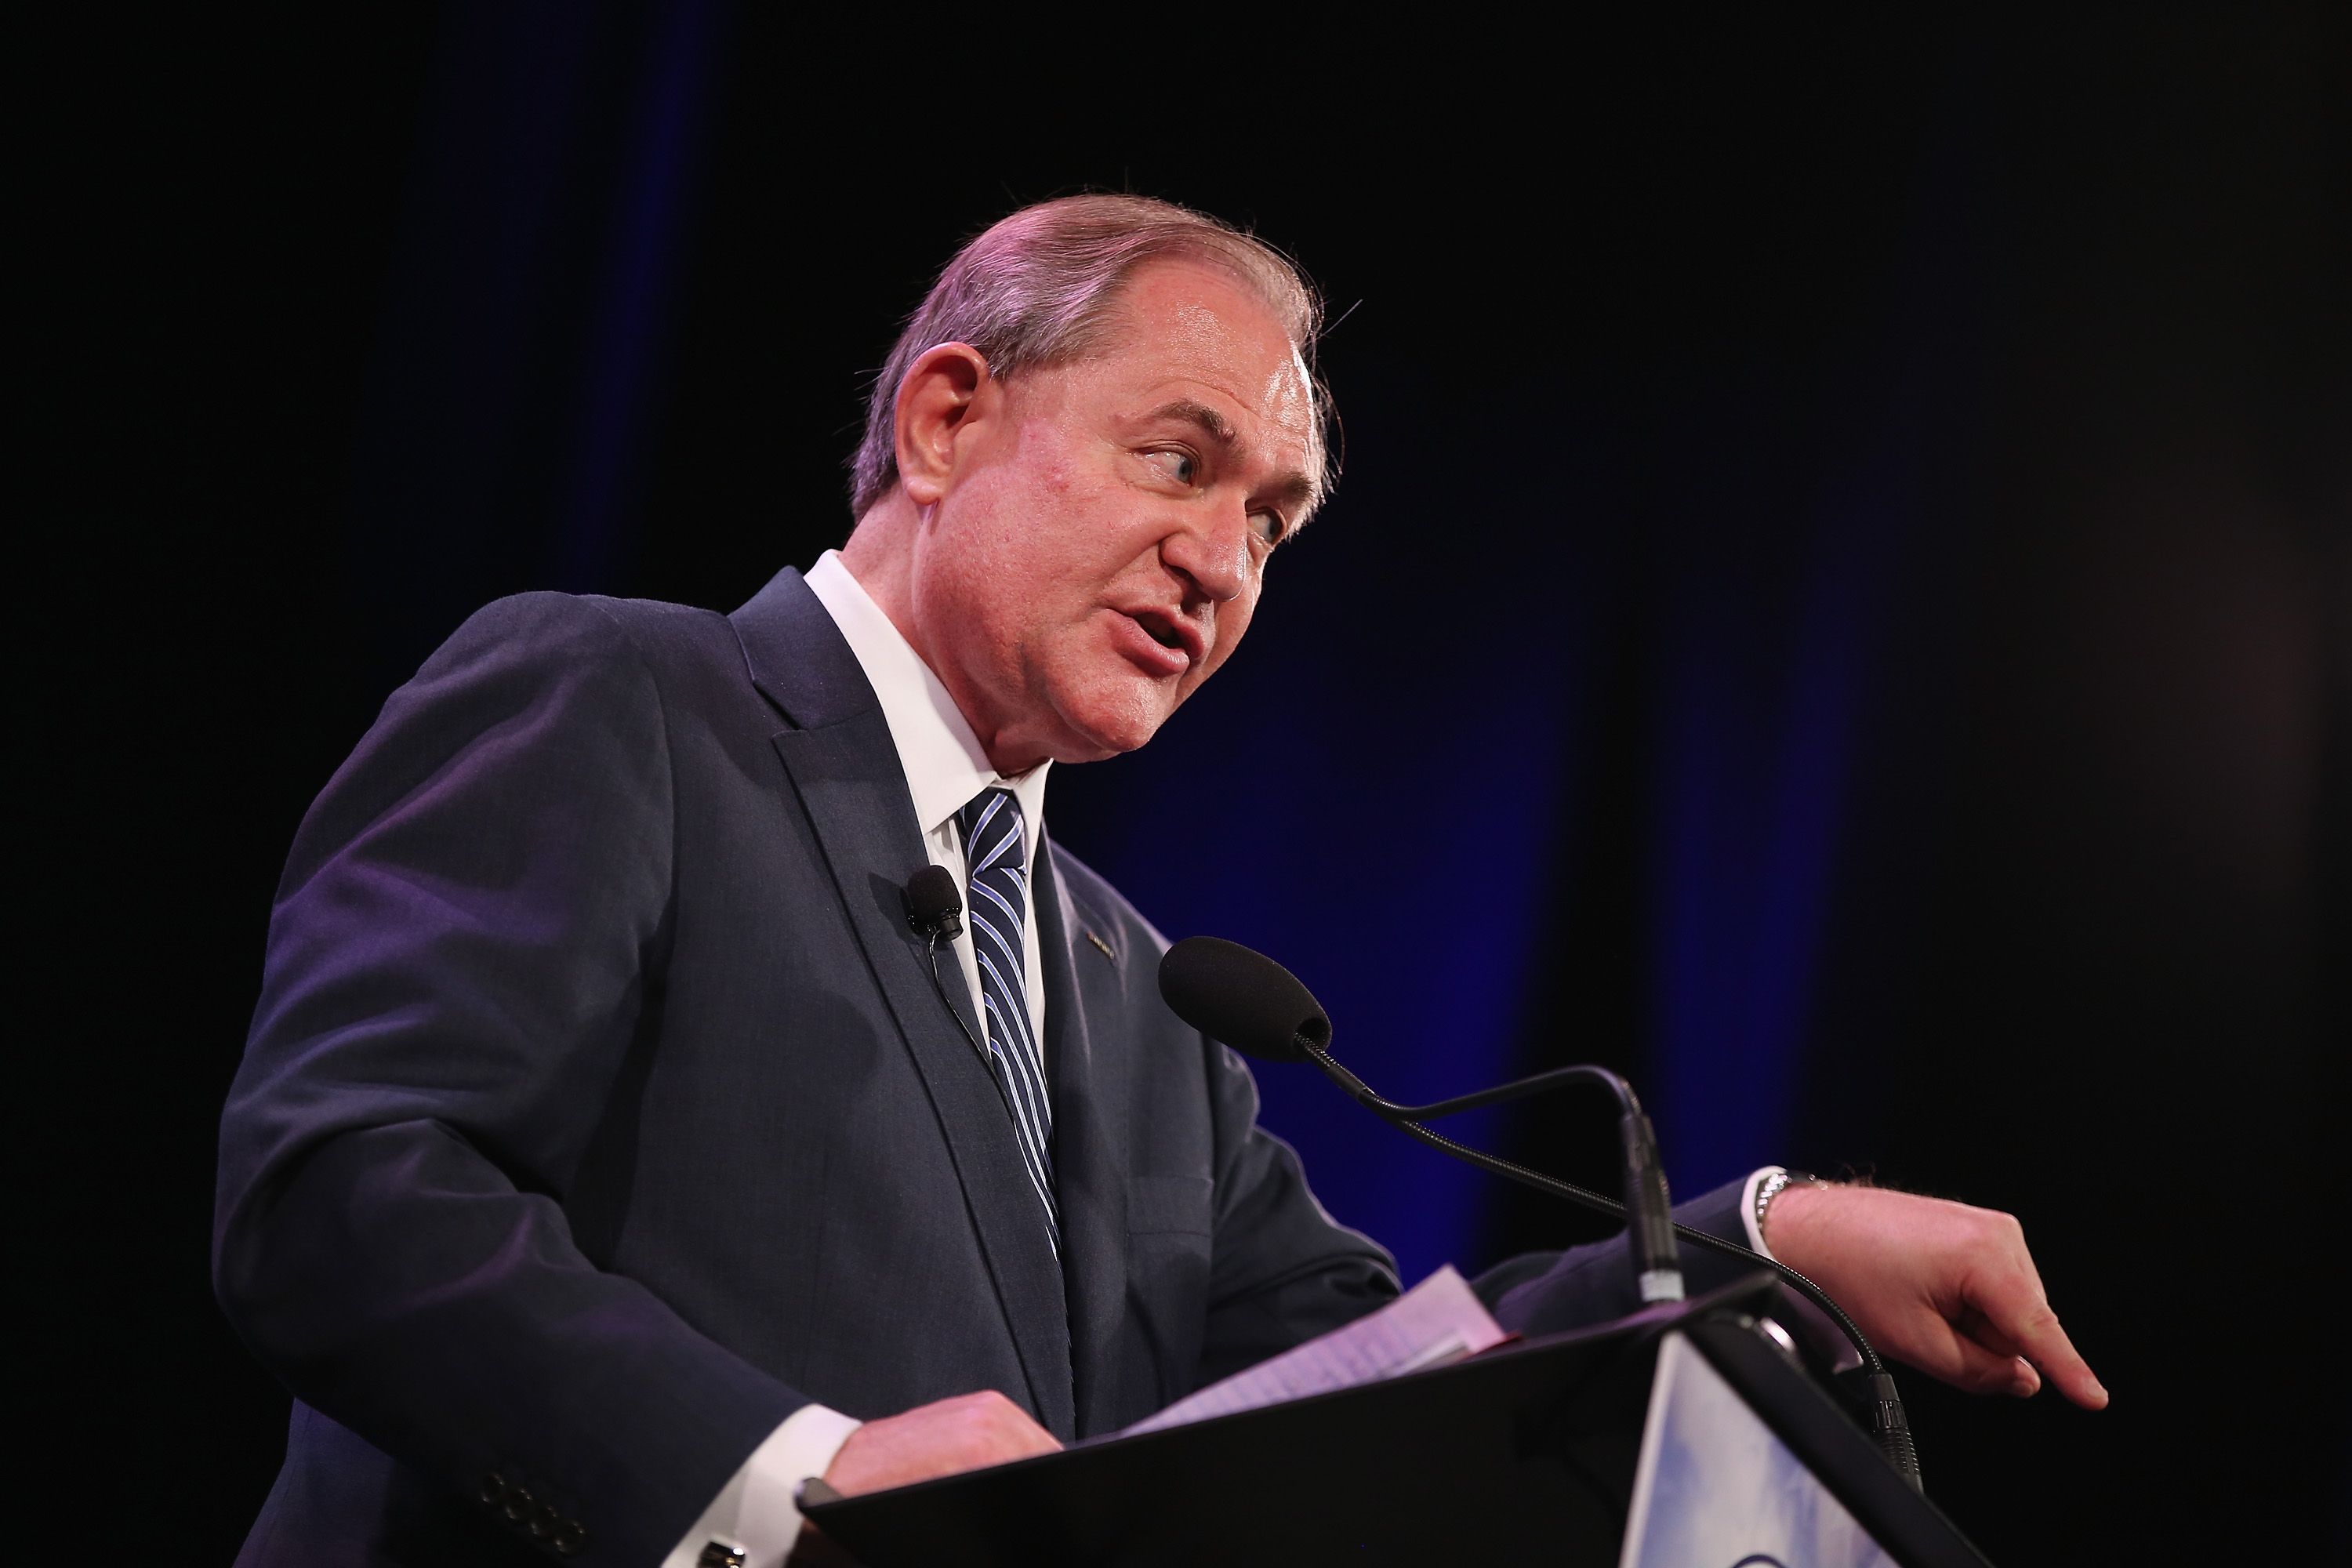 DES MOINES, IA - JANUARY 24: Former Virginia Gov. Jim Gilmore speaks to guests at the Iowa Freedom Summit on January 24, 2015 in Des Moines, Iowa. The summit is hosting a group of potential 2016 Republican presidential candidates to discuss core conservative principles ahead of the January 2016 Iowa Caucuses.